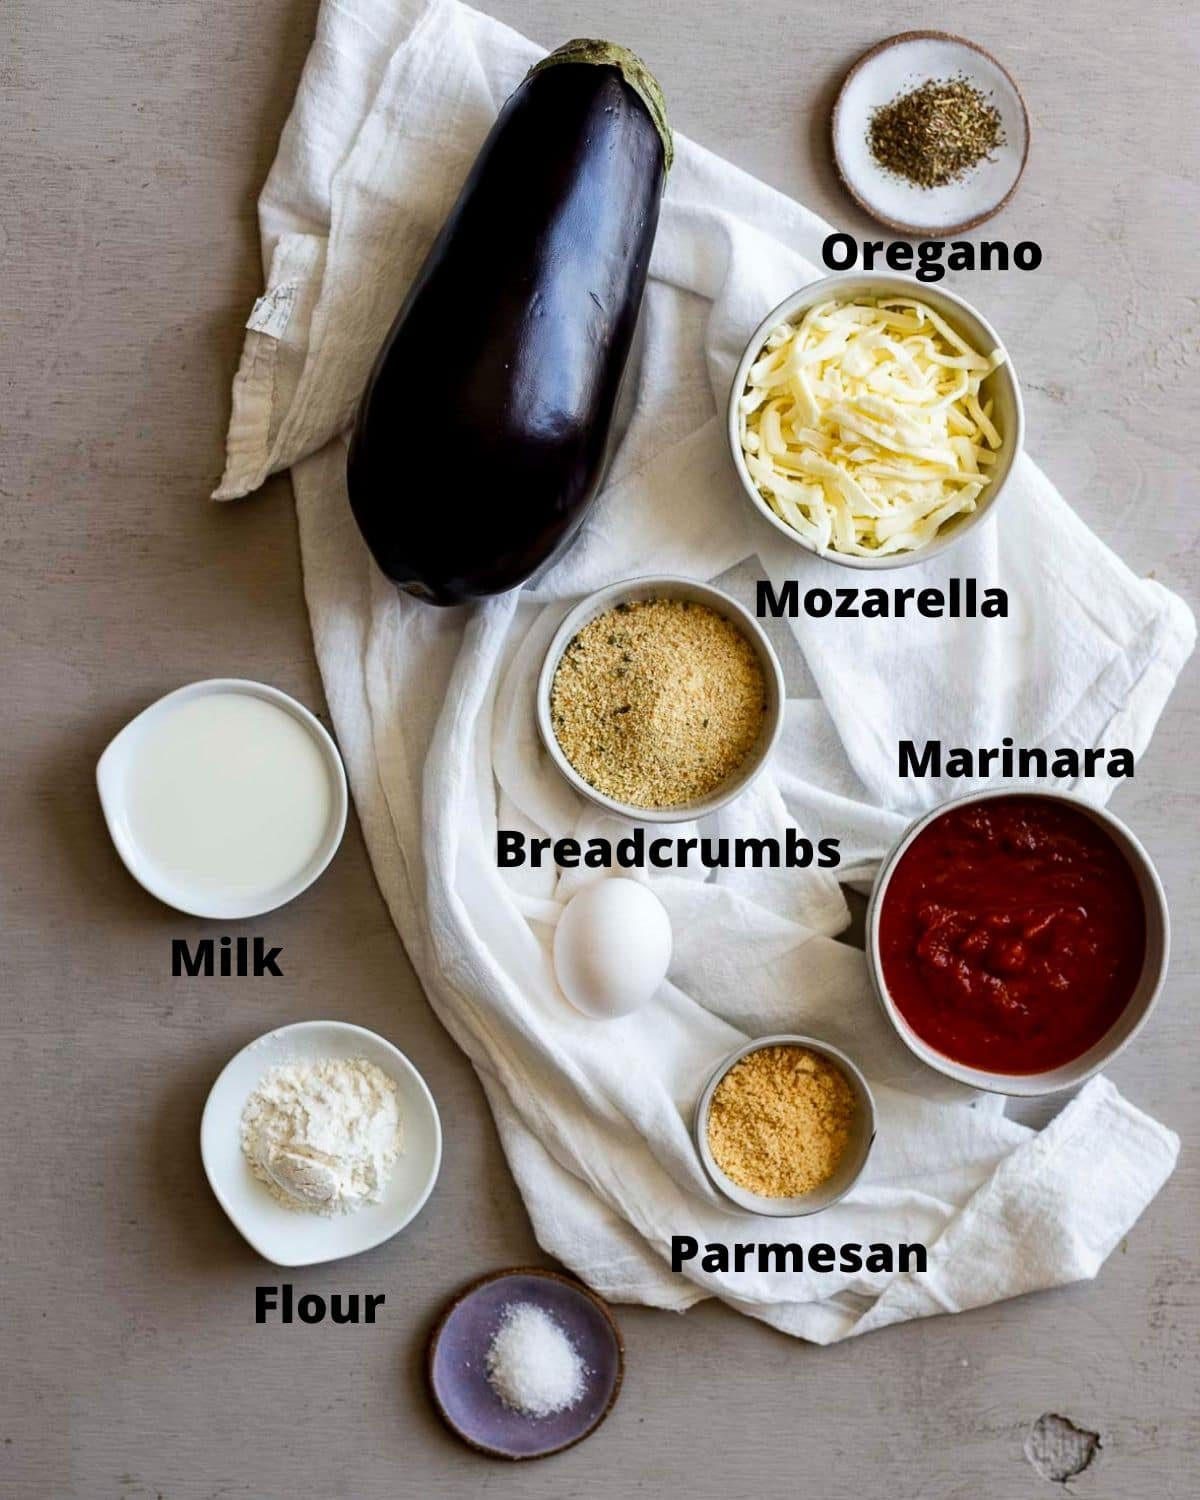 Ingredients to make air fryer eggplant parmesan arranged individually and labelled.